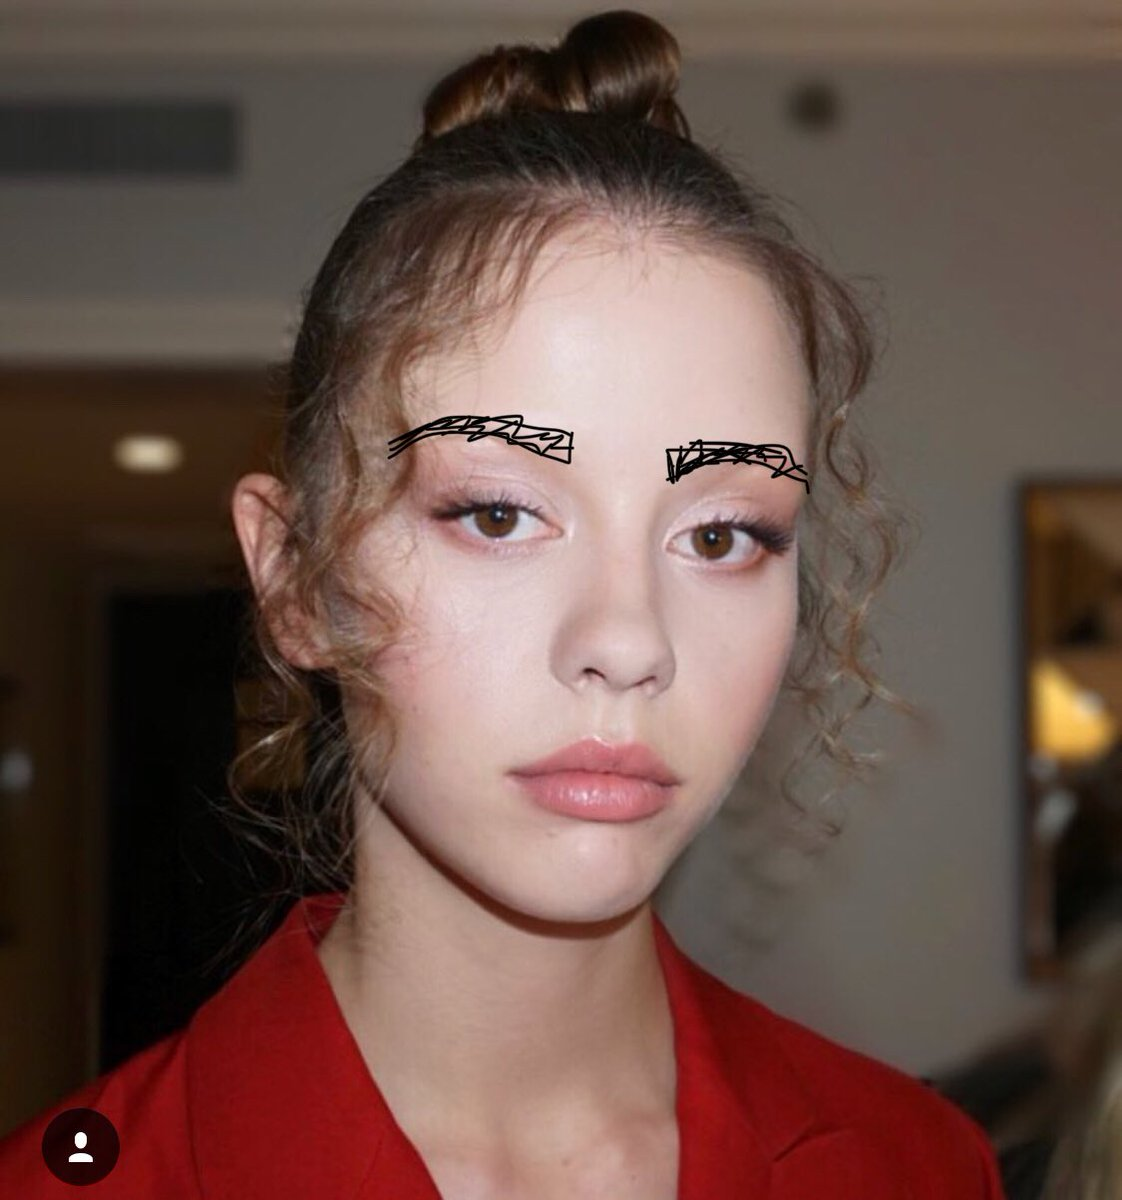 Pine On Twitter Been Drawing Eyebrows On Miss Mia Goth For